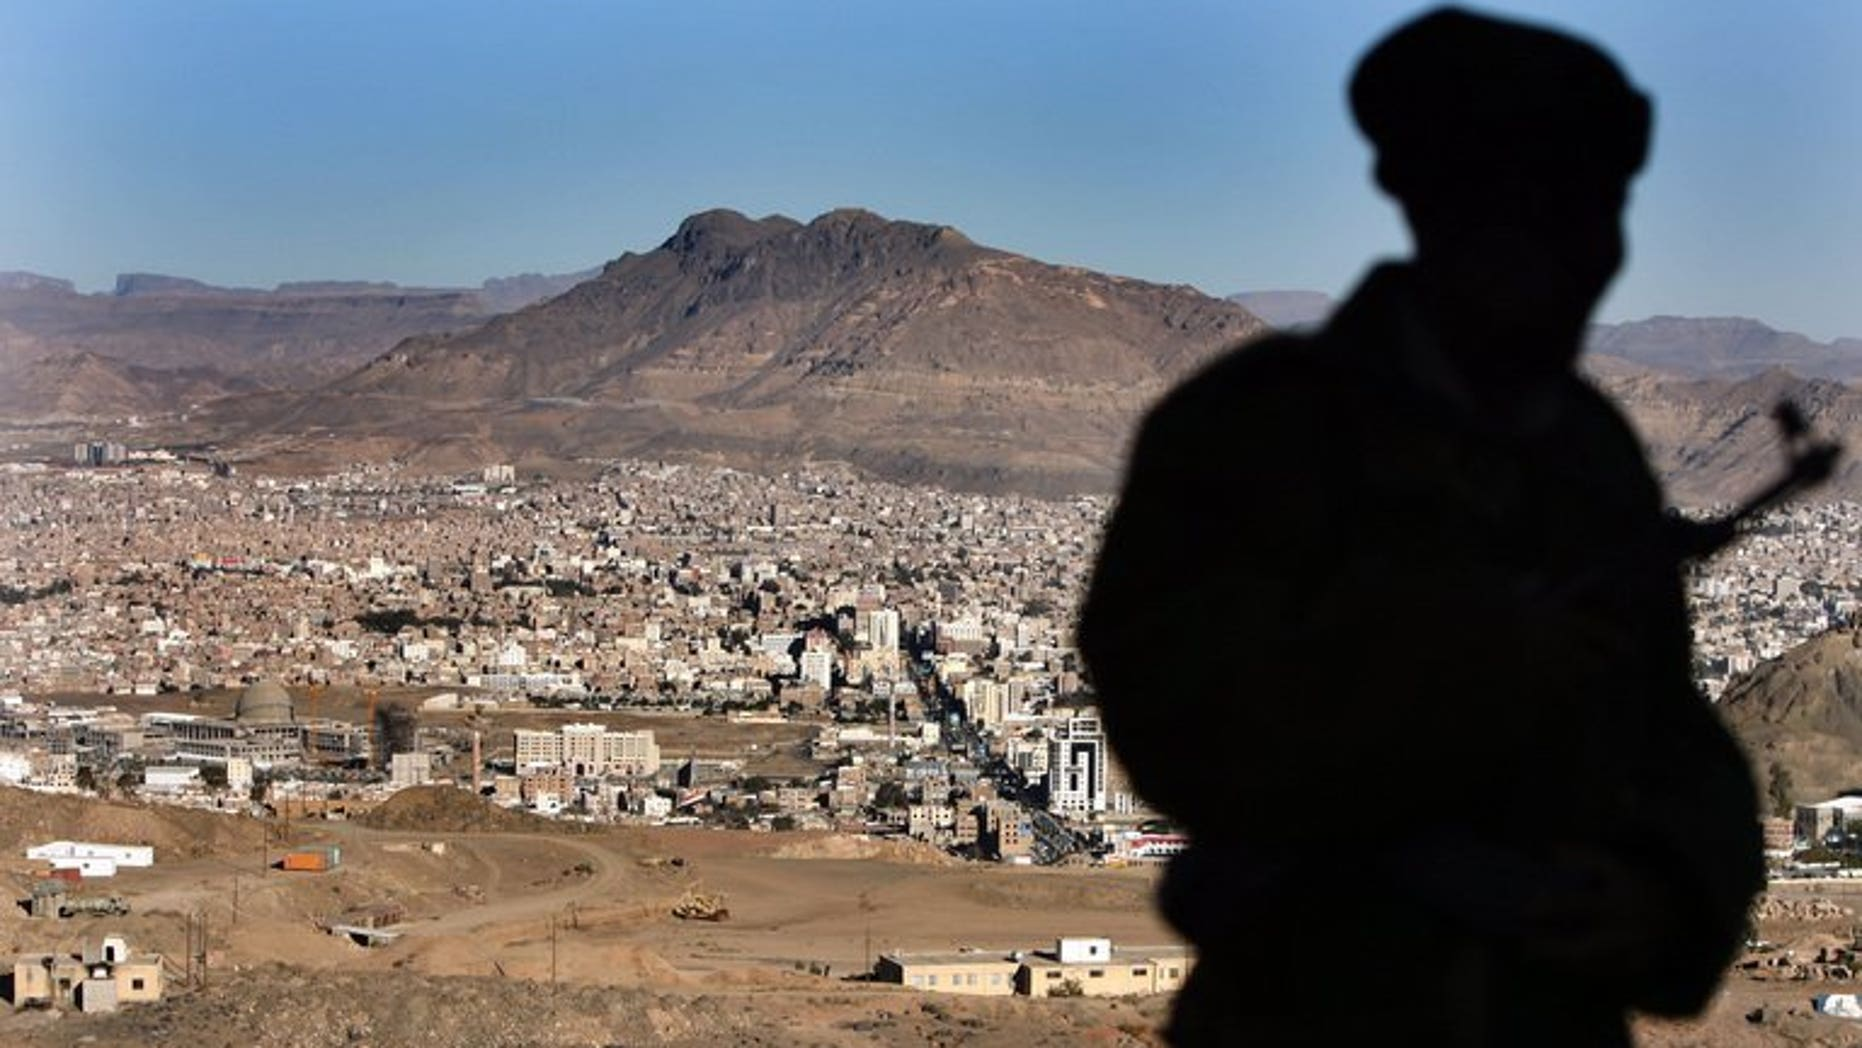 A Yemeni soldier stands on a hill overlooking Sanna, on January 13, 2010. A generator has exploded in a village home in Yemen killing 14 people, most of them members of a single family, a provincial official said.